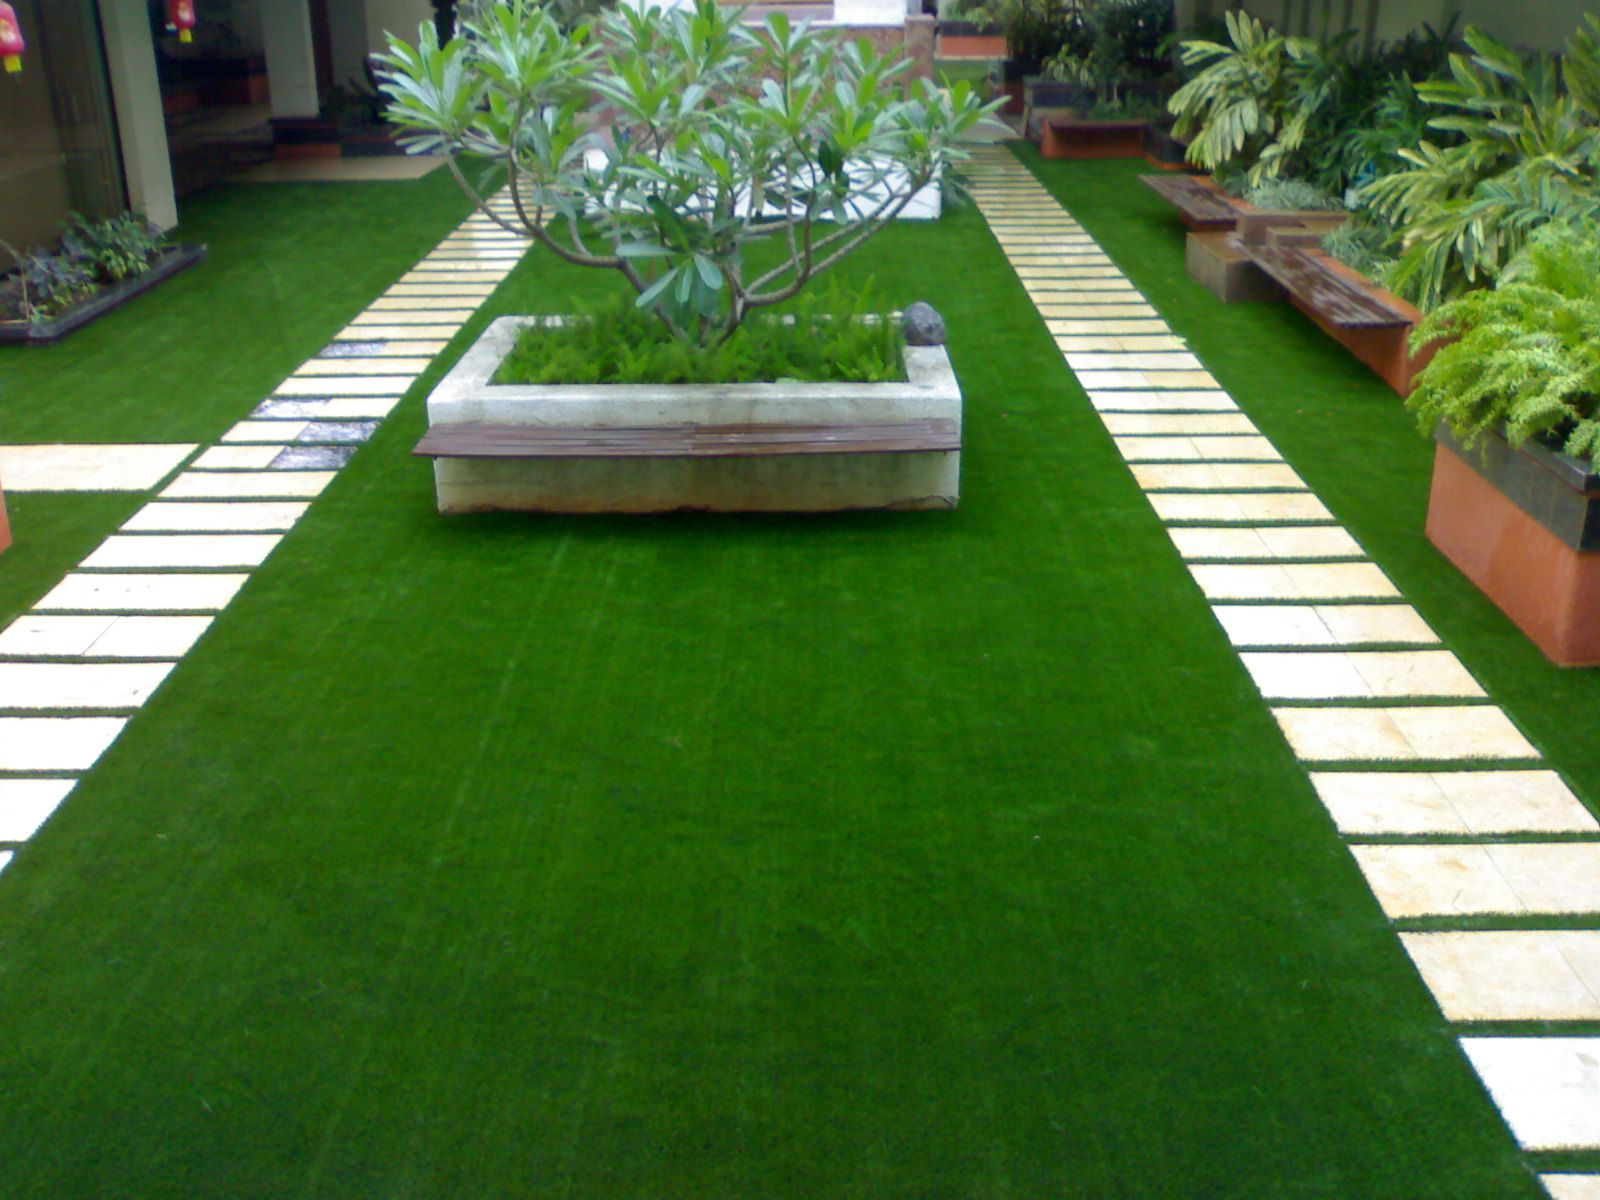 We provide both indoor as well as outdoor grass carpet which is